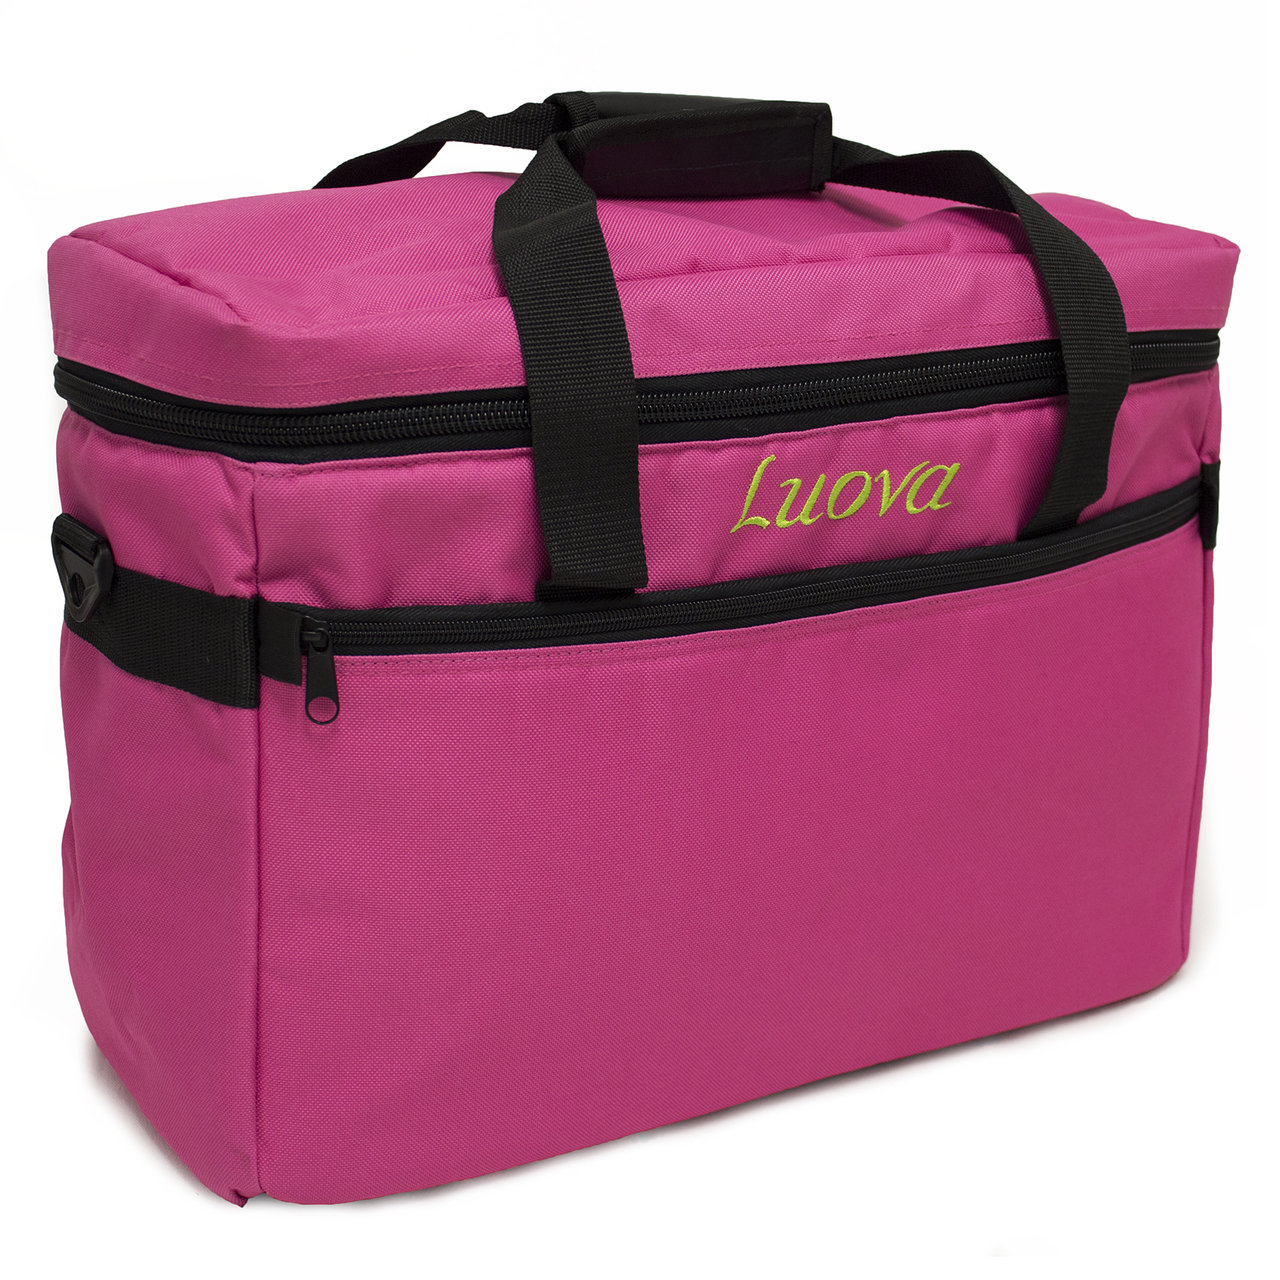 "Luova 18"" Sewing Machine Tote in Pink"